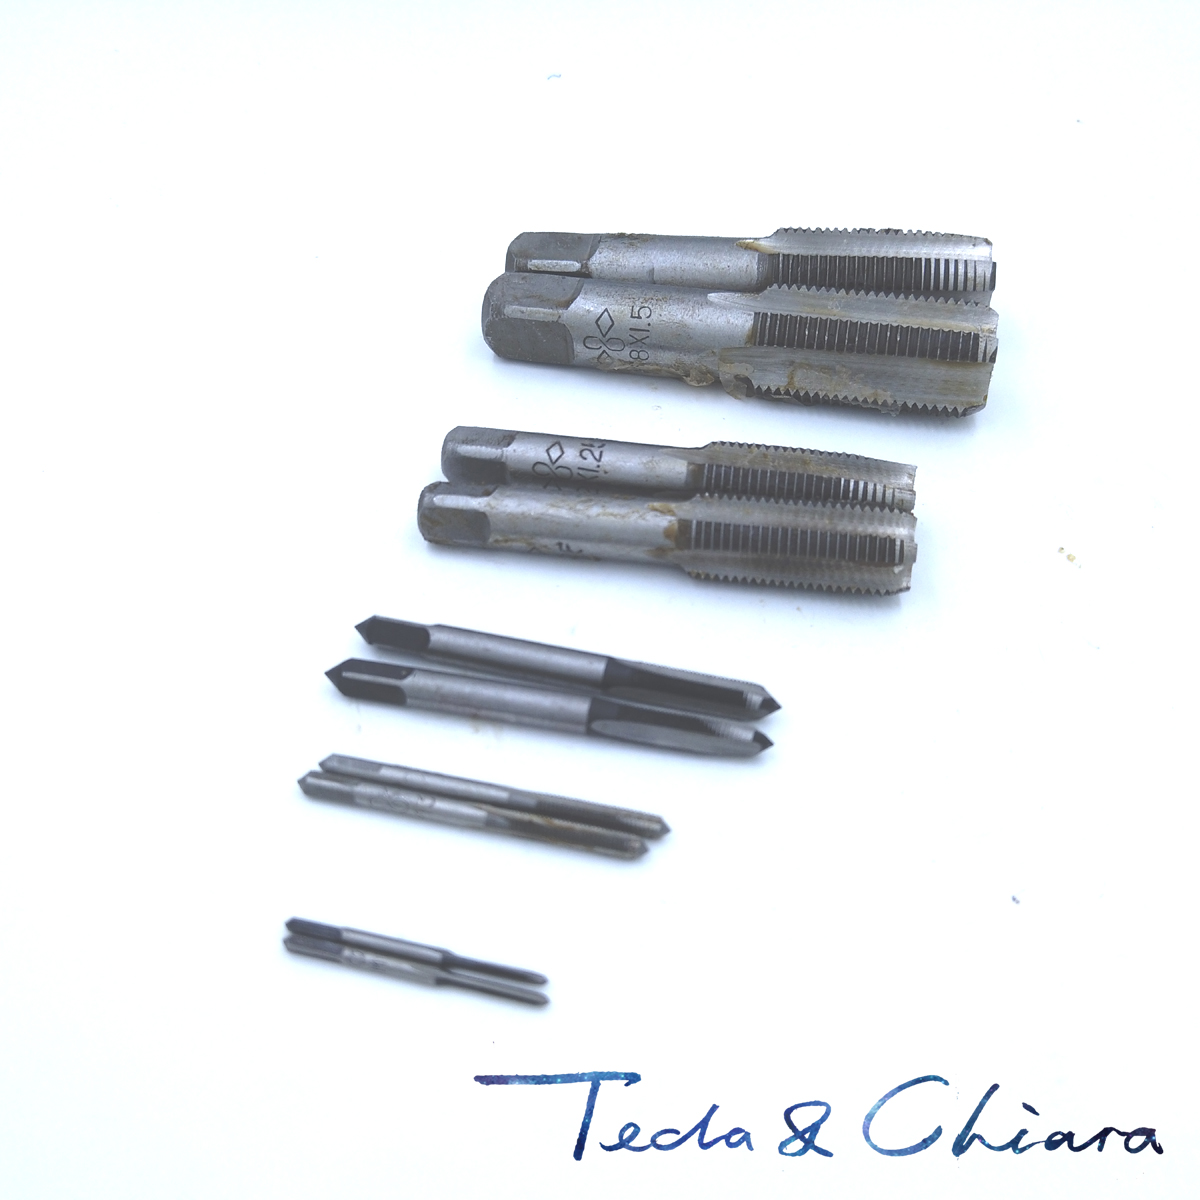 M22 M24 X 1mm 1.5mm 2mm 2.5mm 3mm Metric Taper And Plug Tap Pitch For Mold Machining Free Shipping * 1 1.5 2 2.5 3